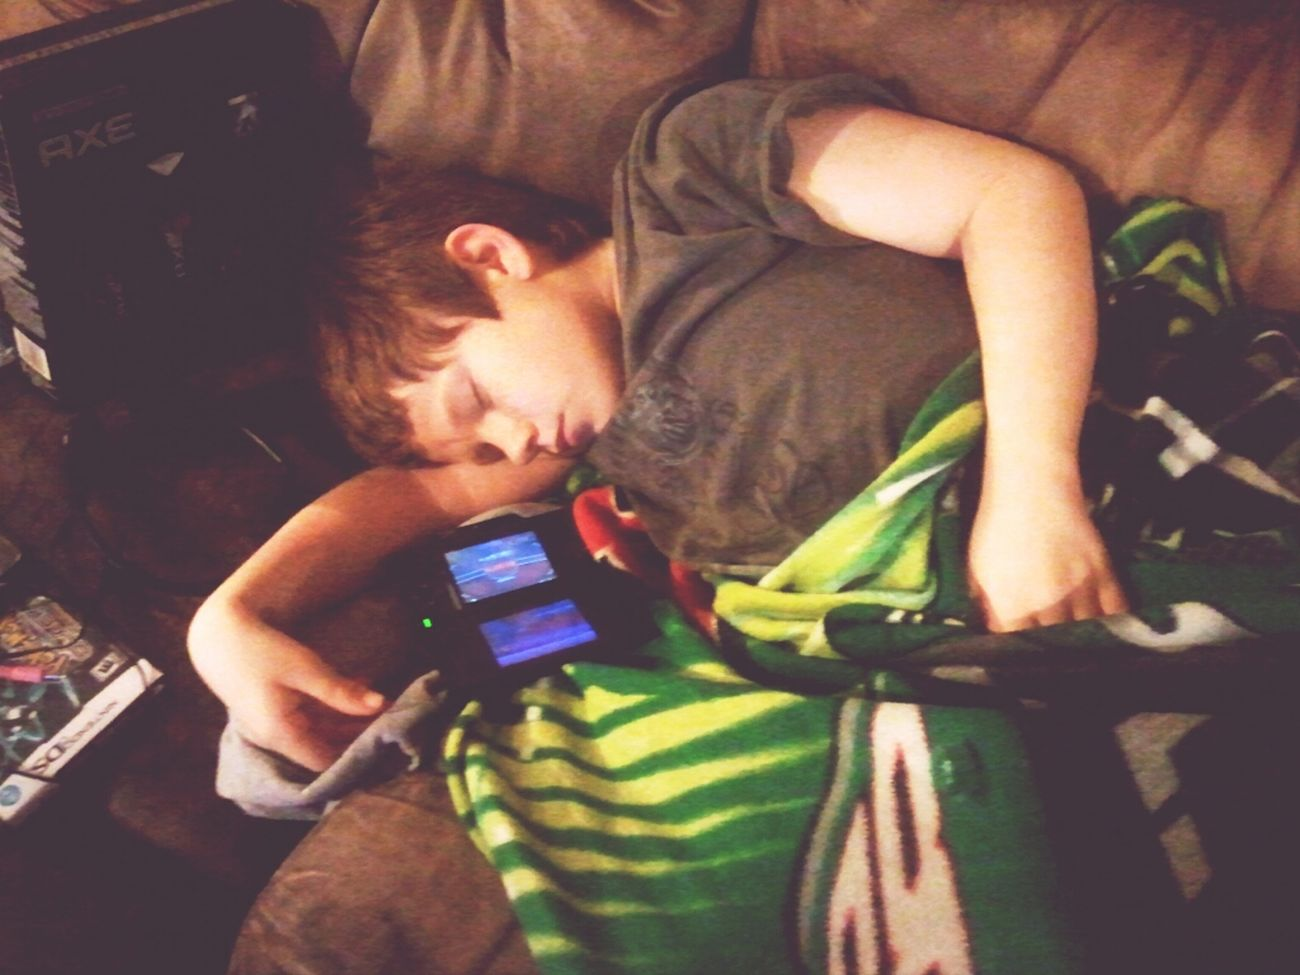 my baby opened all his gifts and the crashed on the couch while playing his game